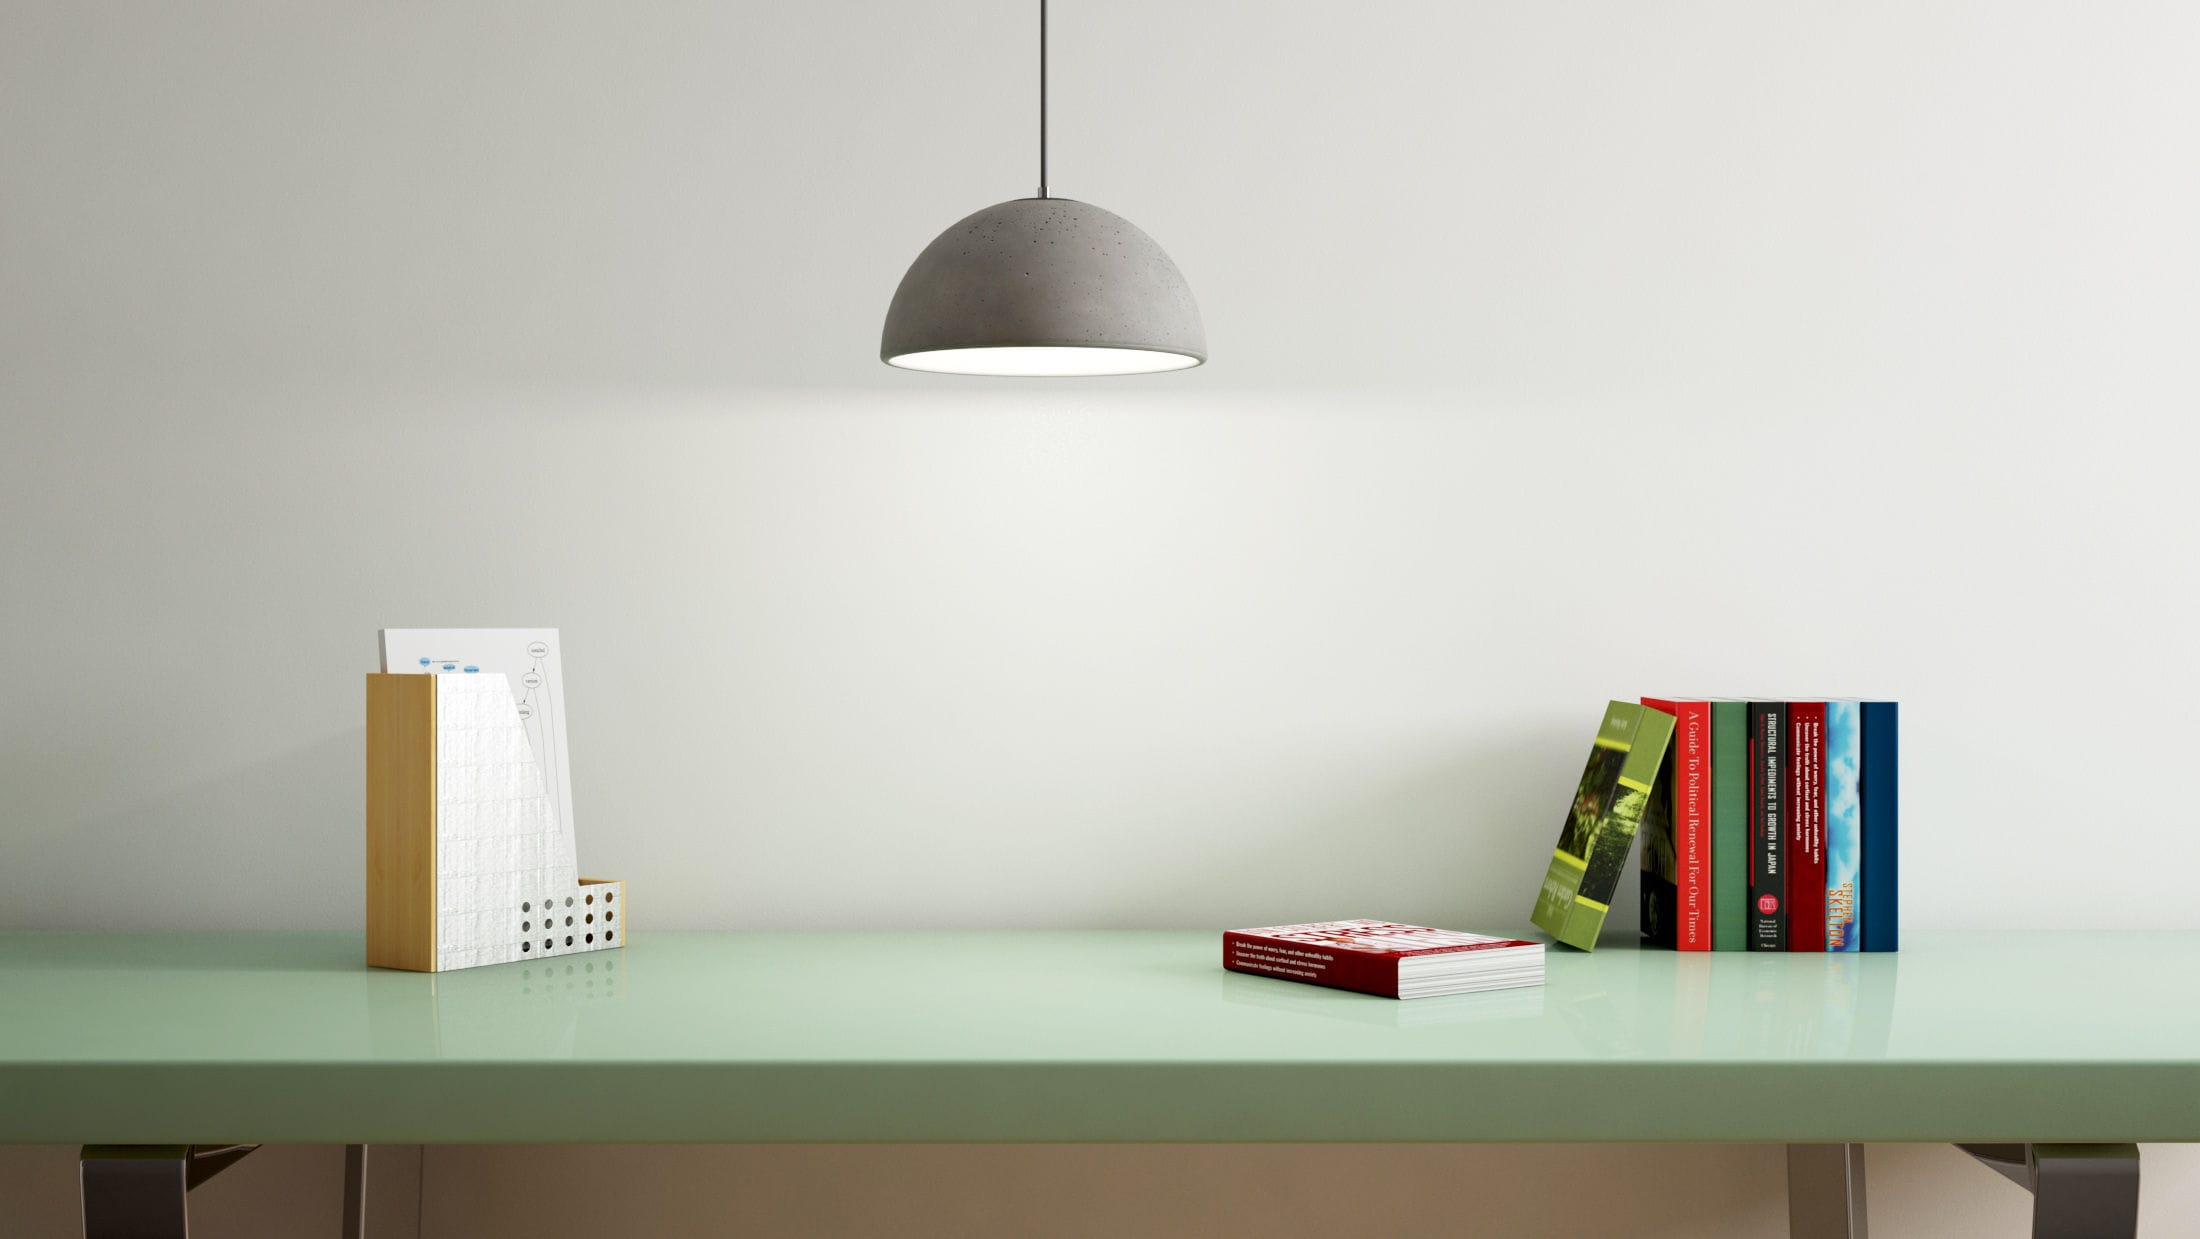 pendant by cast hubert e walled t h lamp concrete r m f llwdesign heavy benjamin pin o lights decode thin design